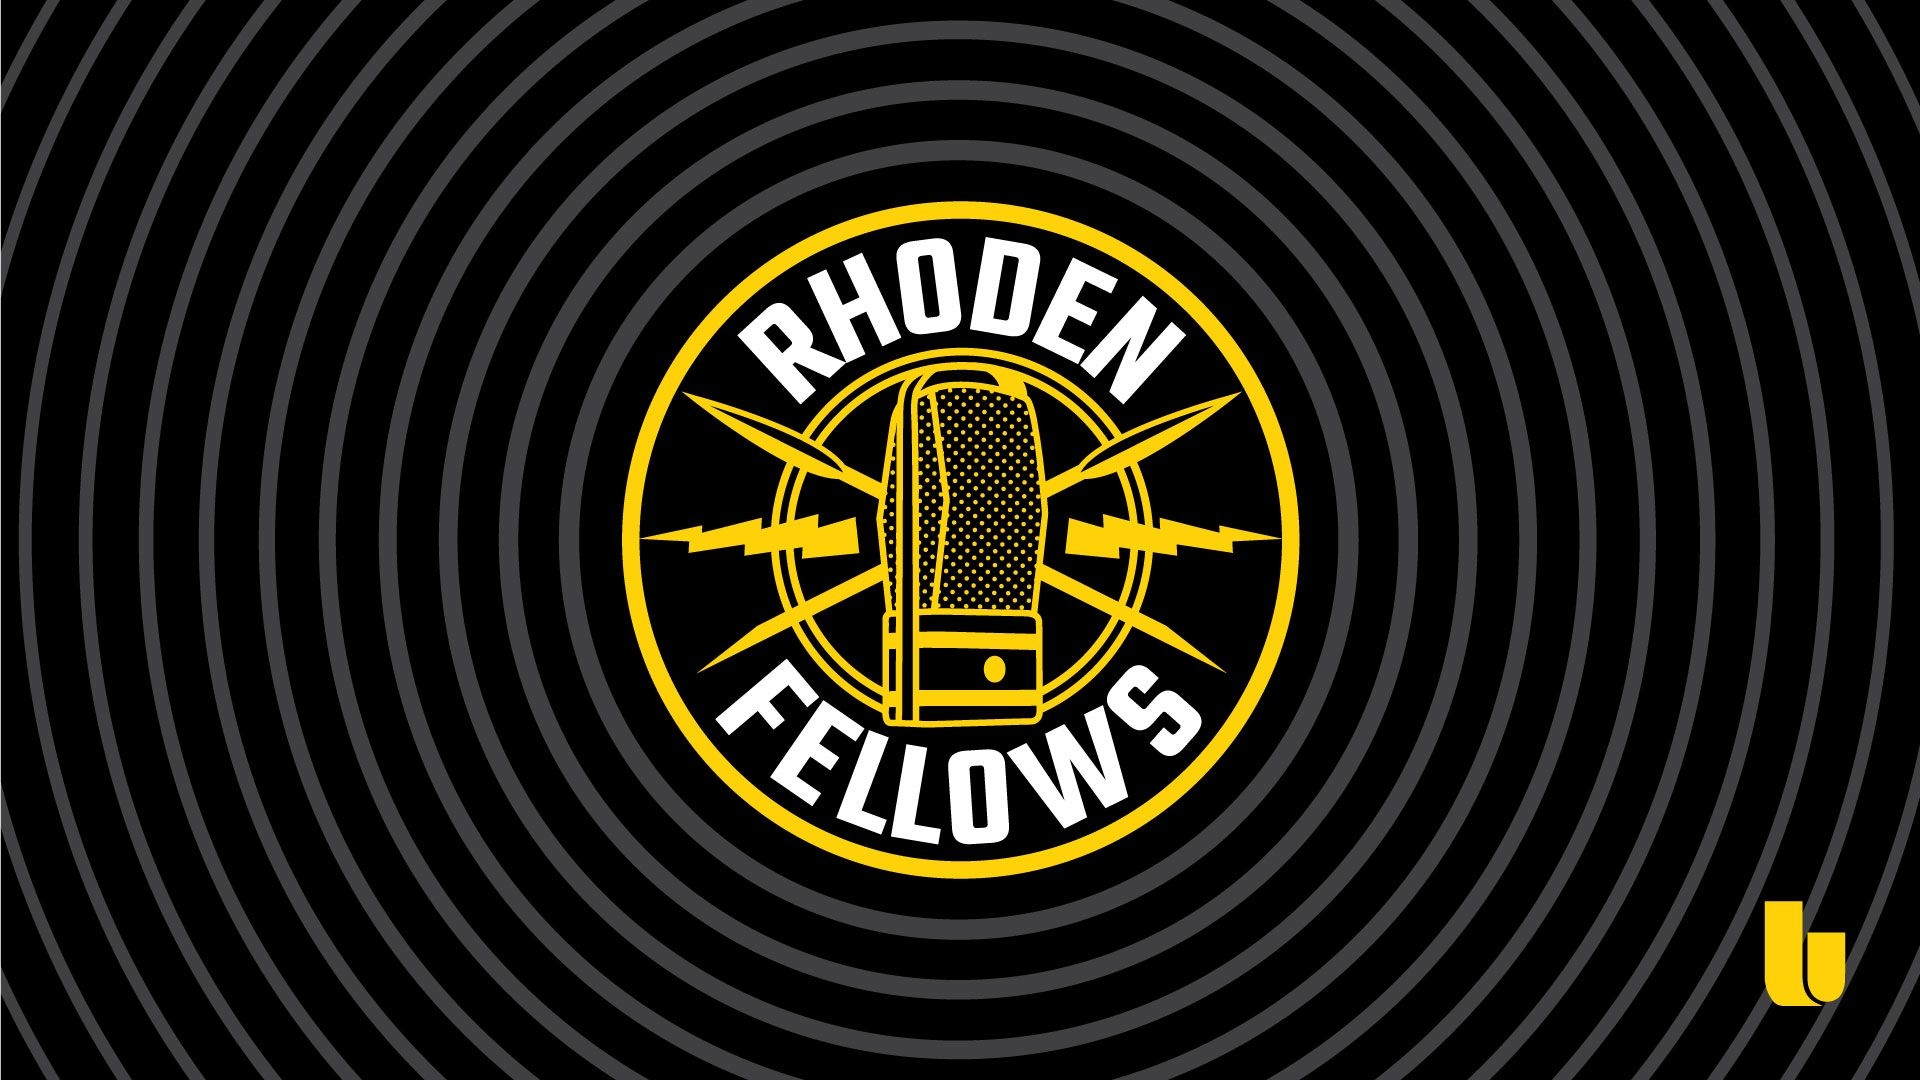 Rhoden Fellows